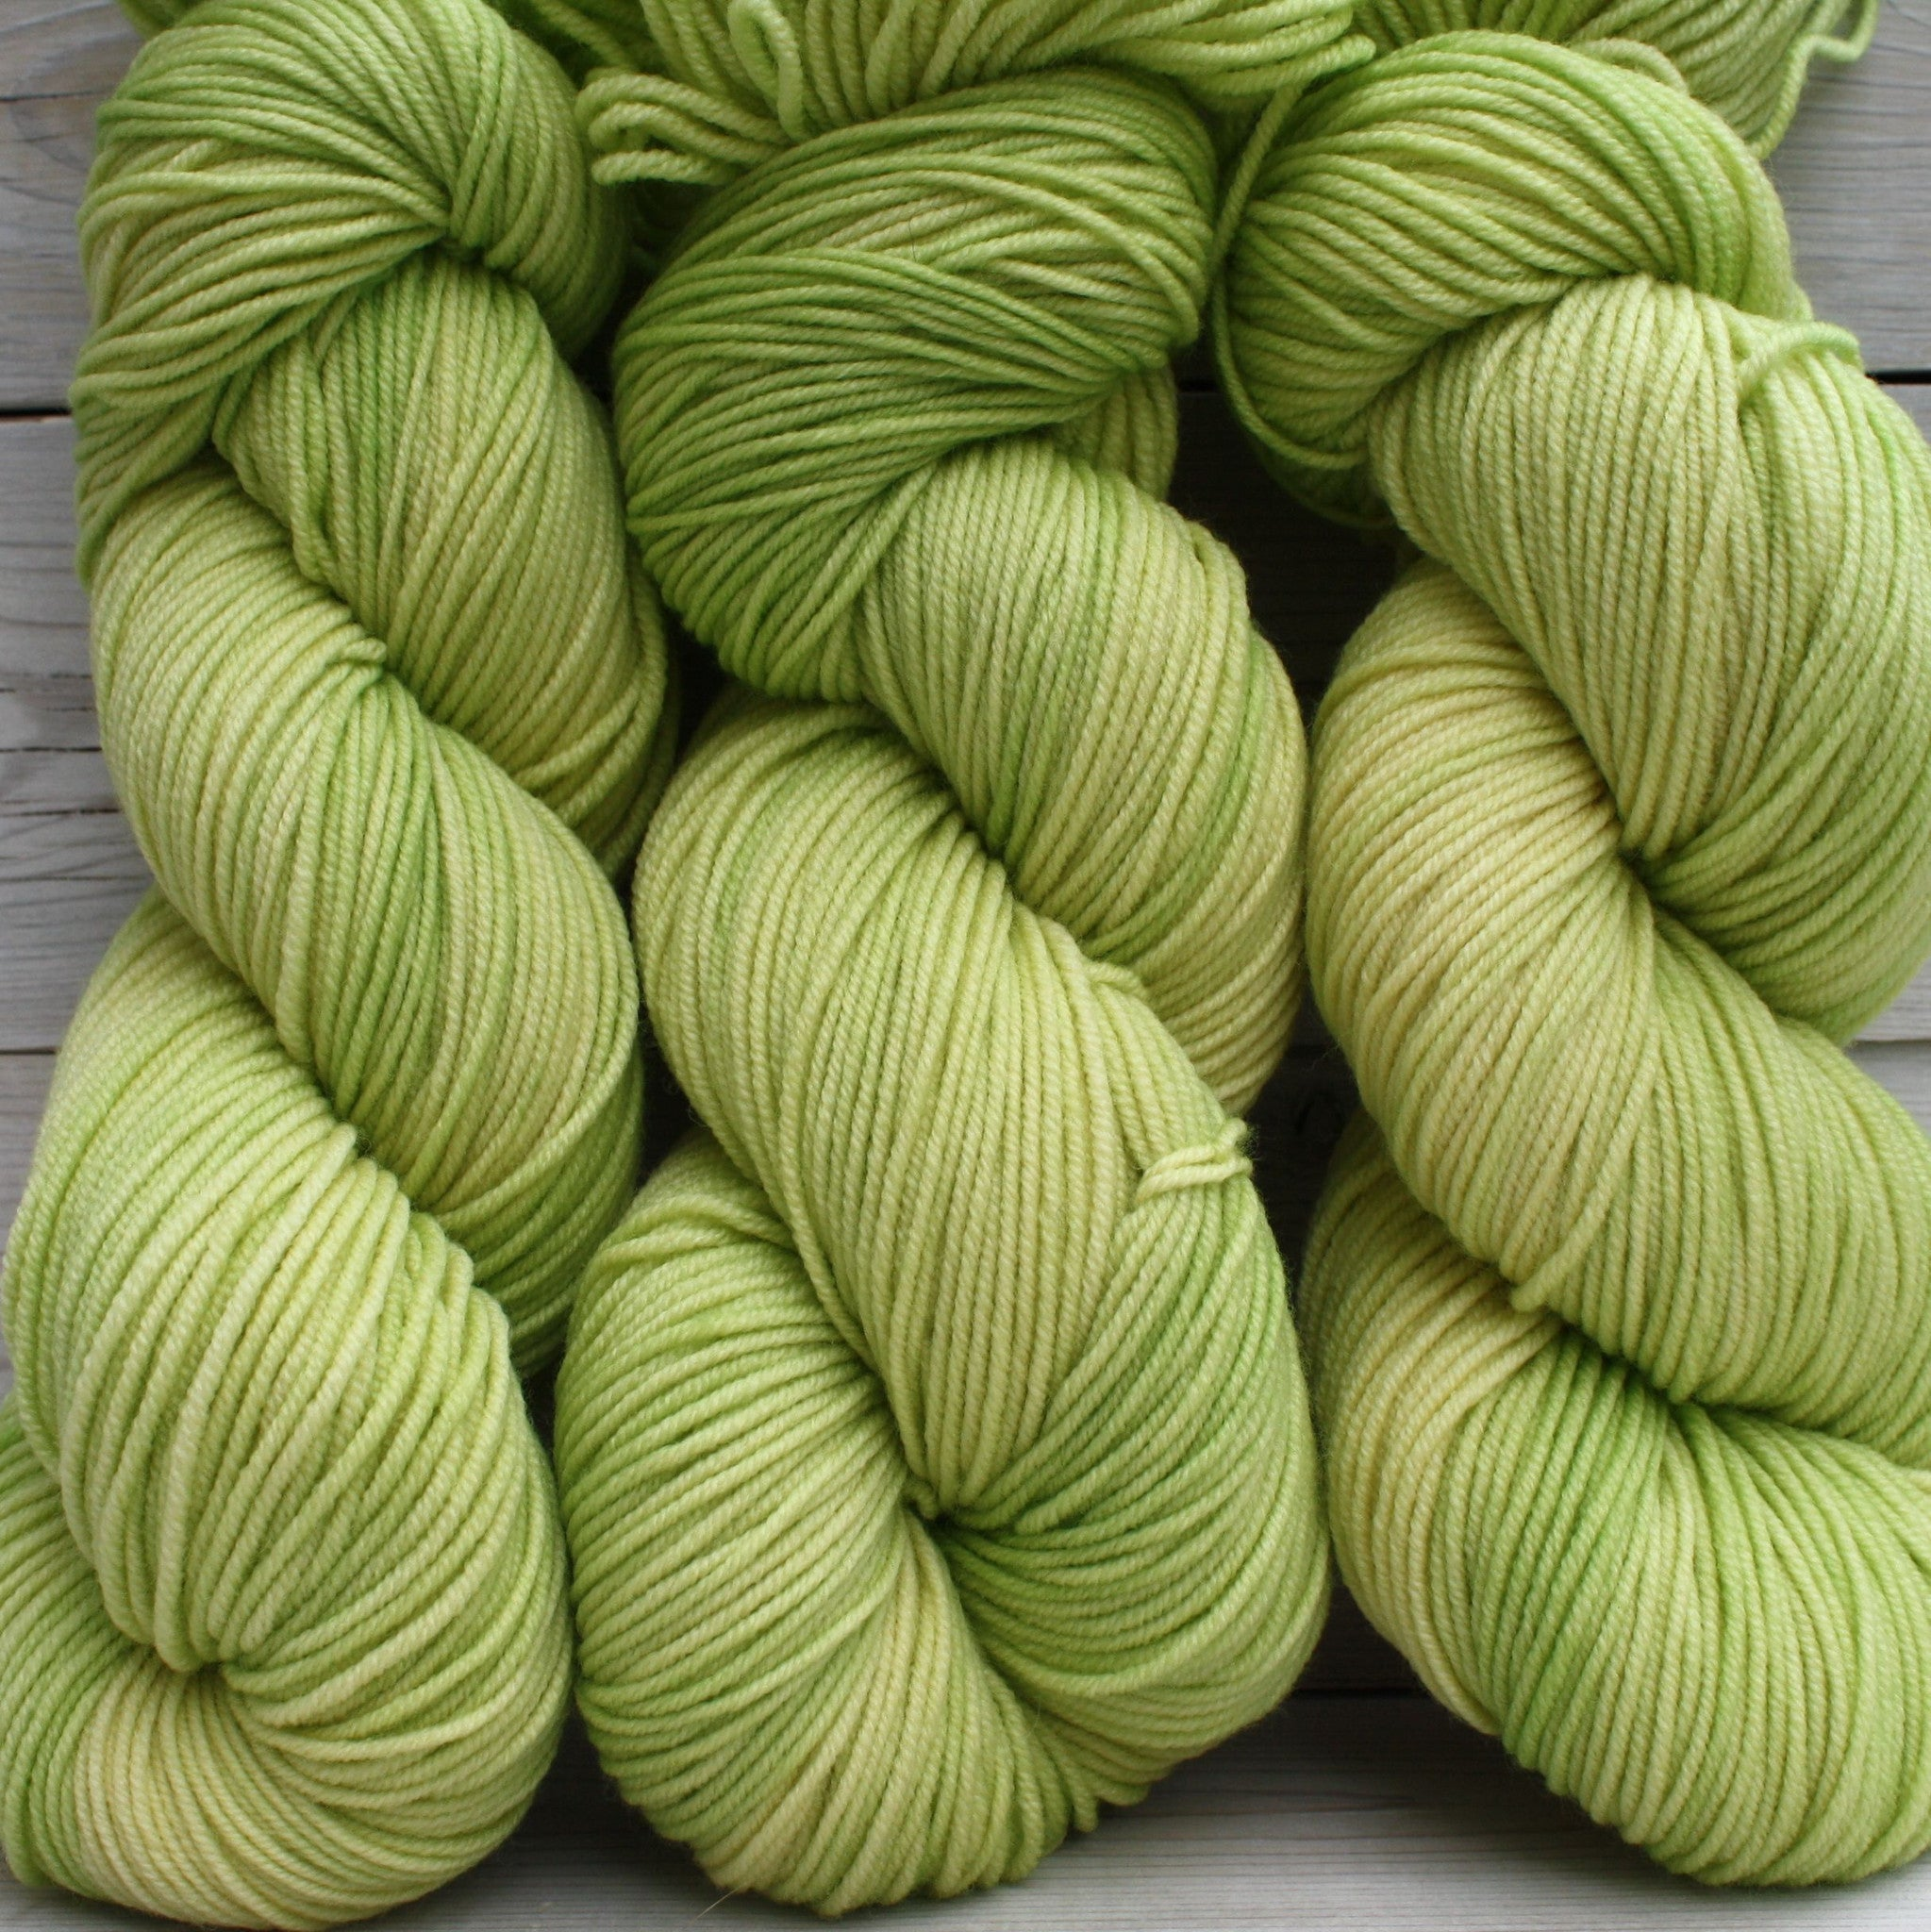 Aspen Sport Yarn | Colorway: Lemon Lime | Overstock